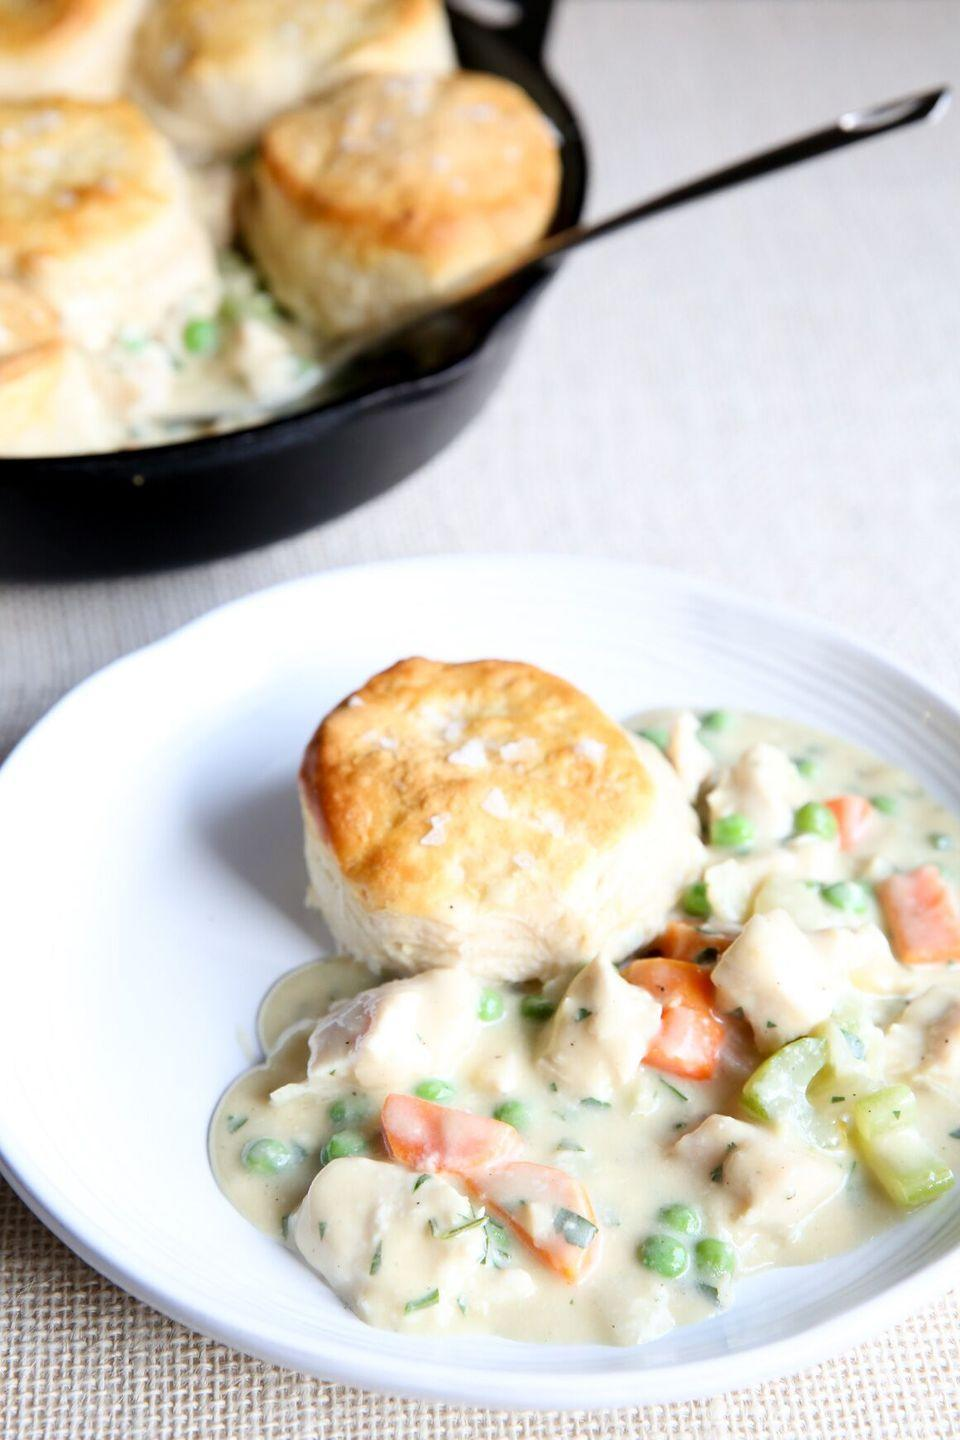 """<p>Biscuits > puff pastry.</p><p>Get the recipe from <a href=""""https://www.delish.com/cooking/recipe-ideas/recipes/a50857/skillet-biscuit-pot-pie-recipe/"""" rel=""""nofollow noopener"""" target=""""_blank"""" data-ylk=""""slk:Delish"""" class=""""link rapid-noclick-resp"""">Delish</a>.</p>"""